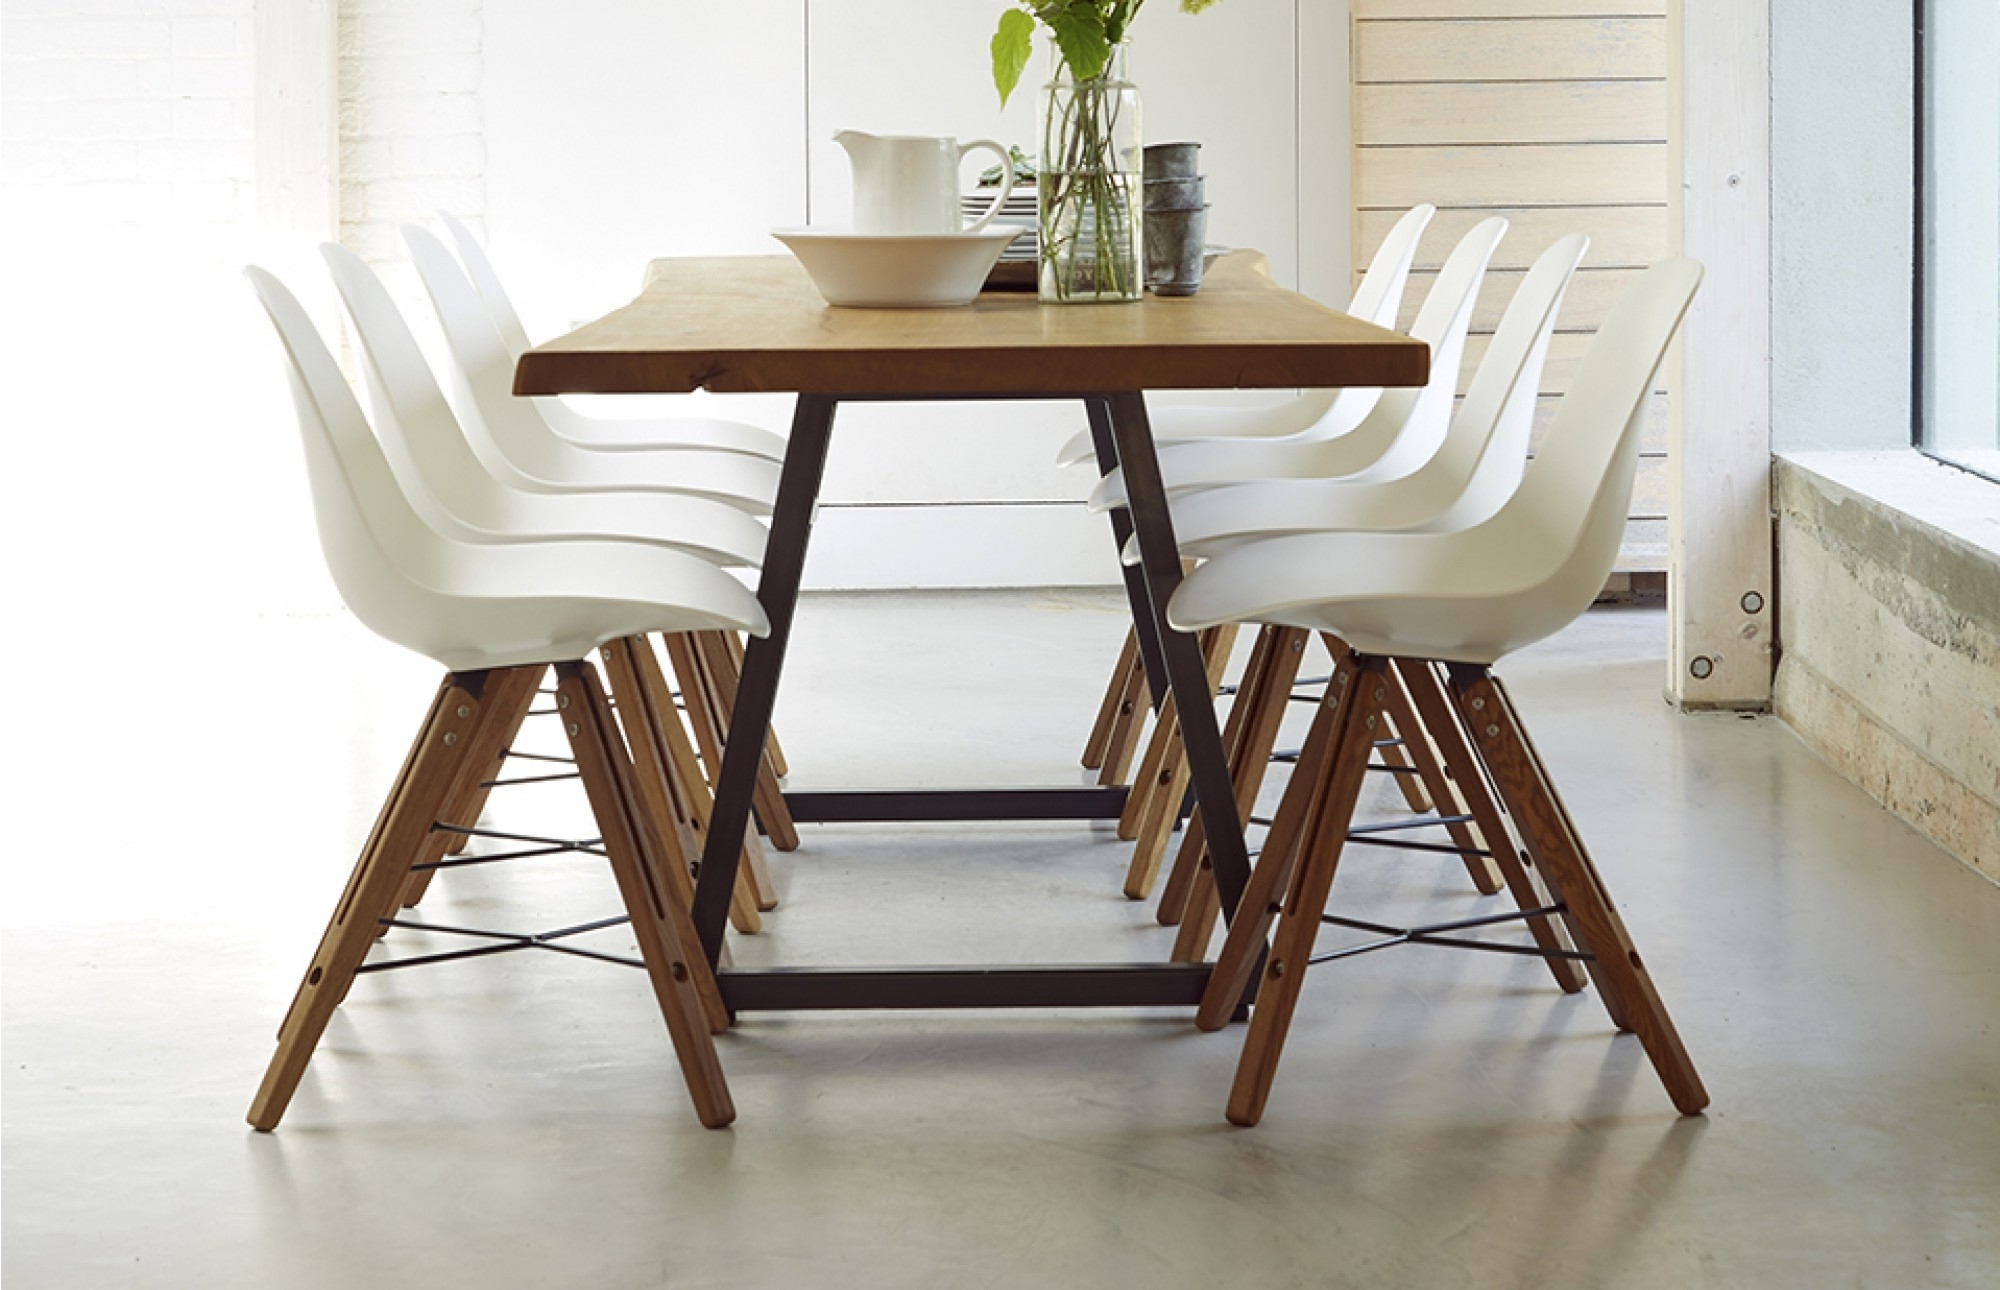 Most Recently Released Dining Tables. Marvellous 8 Seater Dining Table Set: 8 Seater Dining Inside White Dining Tables 8 Seater (Gallery 8 of 25)